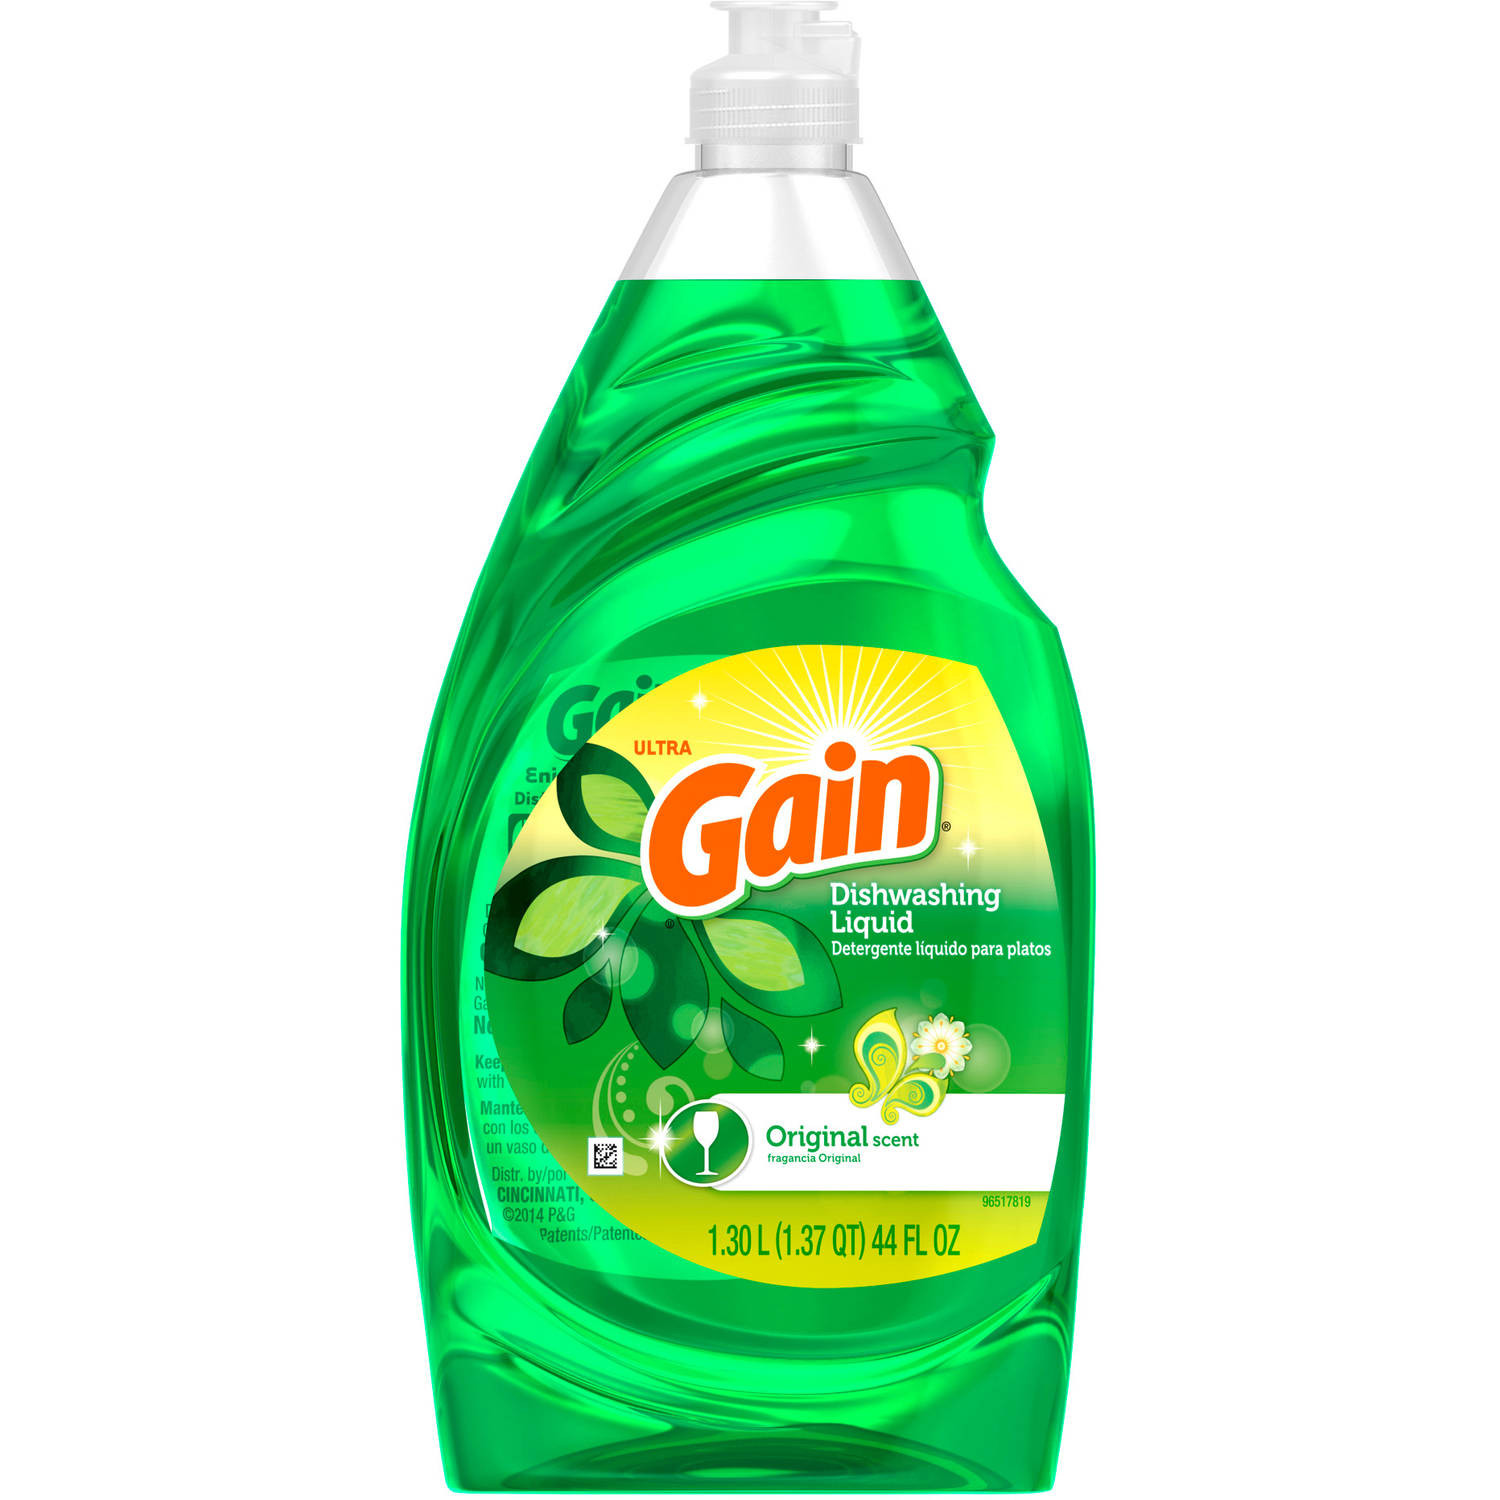 Gain Dishwashing Liquid Original Scent (choose your size)